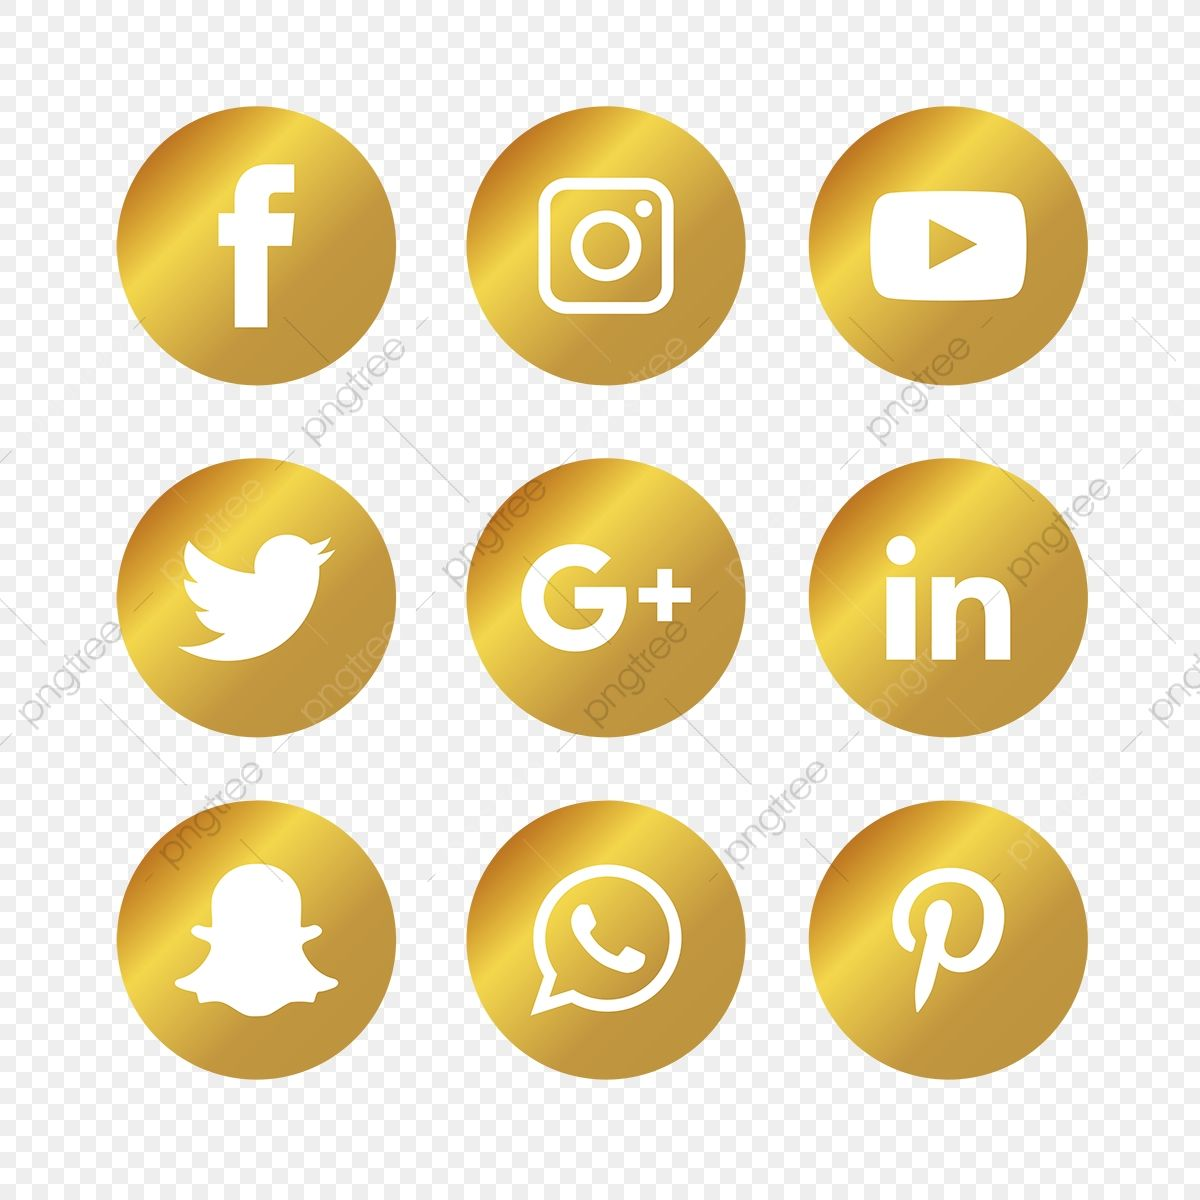 Golden Social Media Icons Set Social Icons Media Icons Social Media Icons Png And Vector With Transparent Background For Free Download In 2020 Social Media Icons Free Social Media Icons Vector